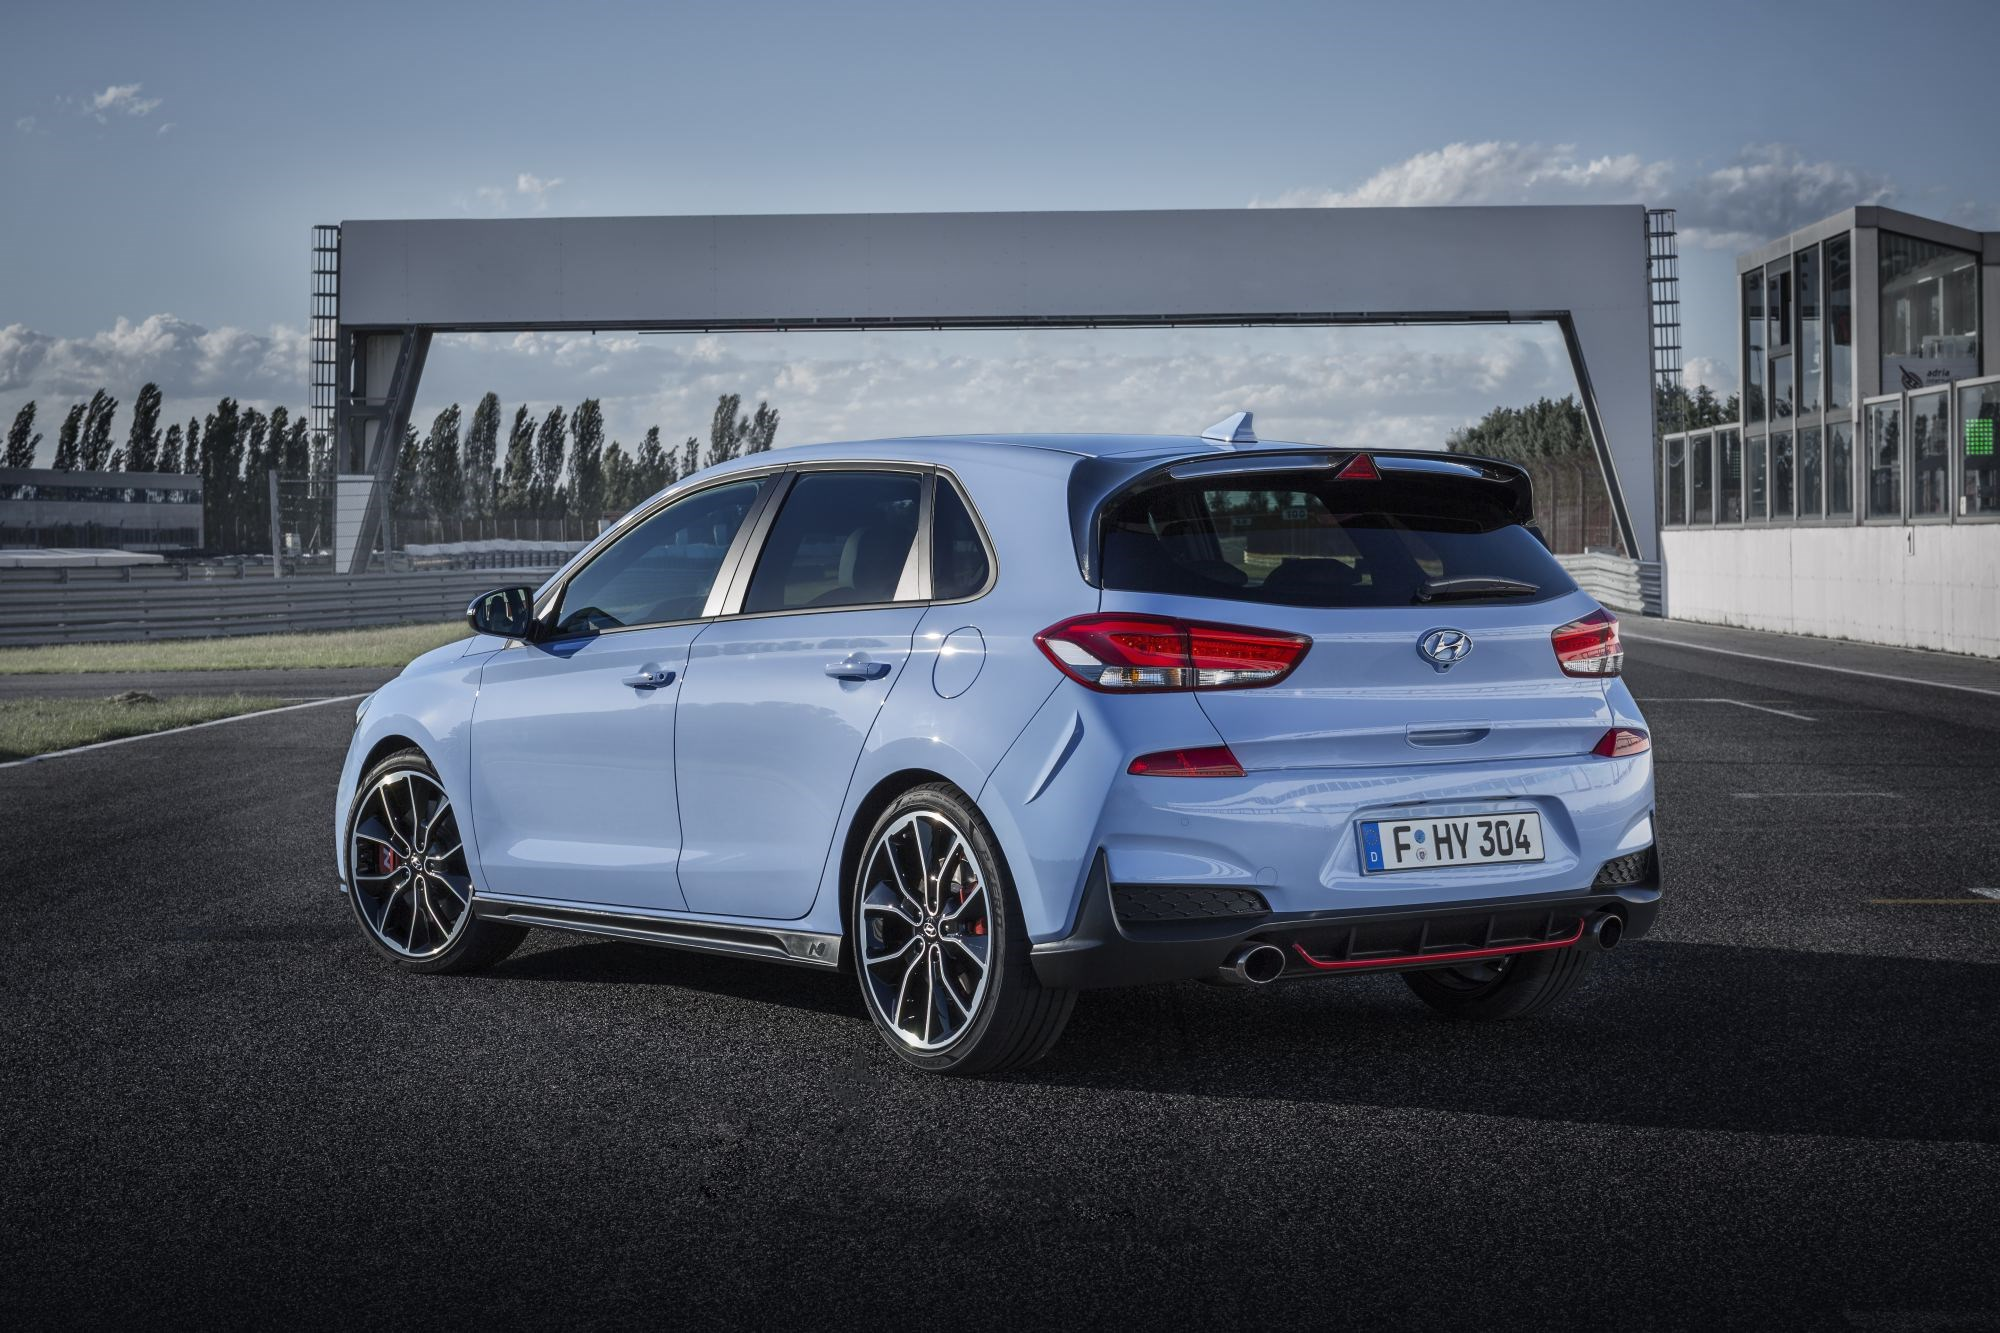 Hyundai Reveals The i30 N, Their First Real Hot Hatch Thumbnail